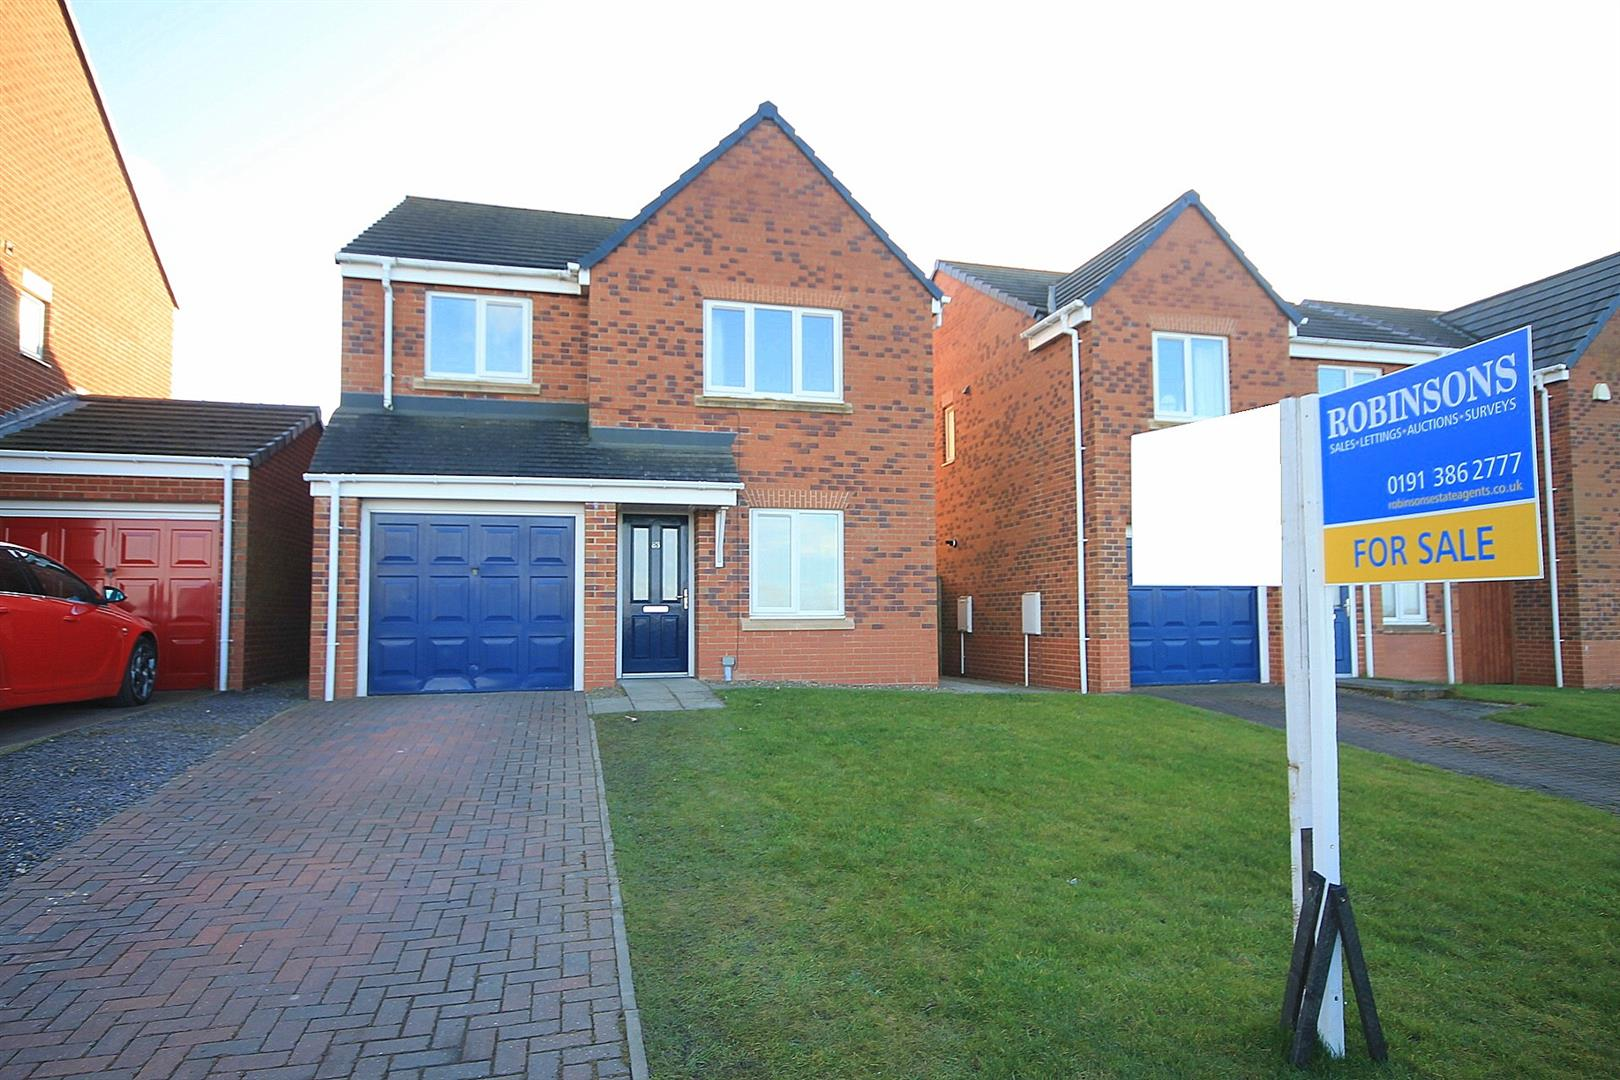 4 Bedrooms Detached House for sale in Henry Avenue, Bowburn, Durham